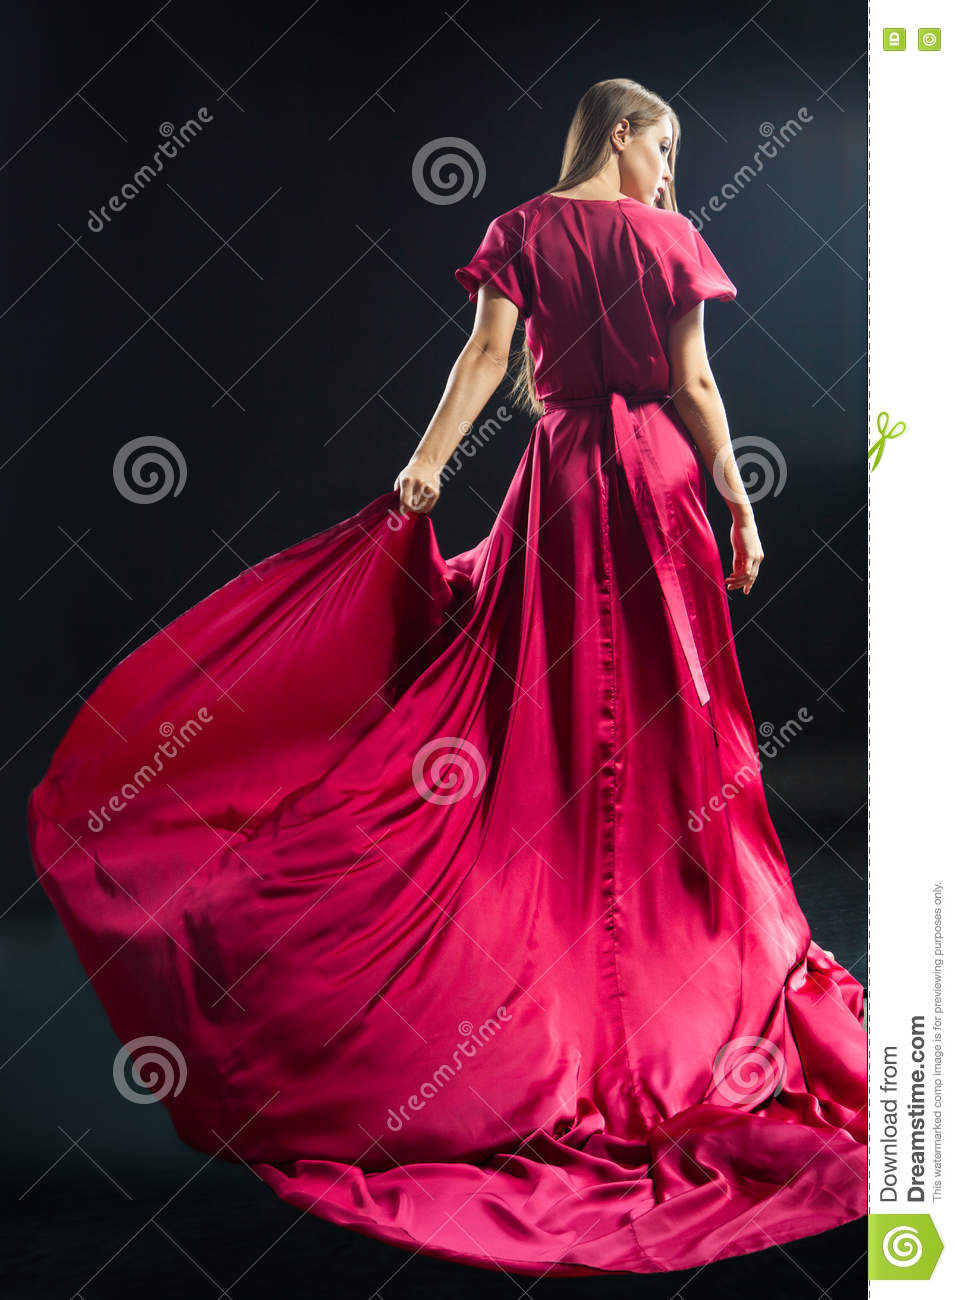 Back view of young blonde woman in bright pink dress